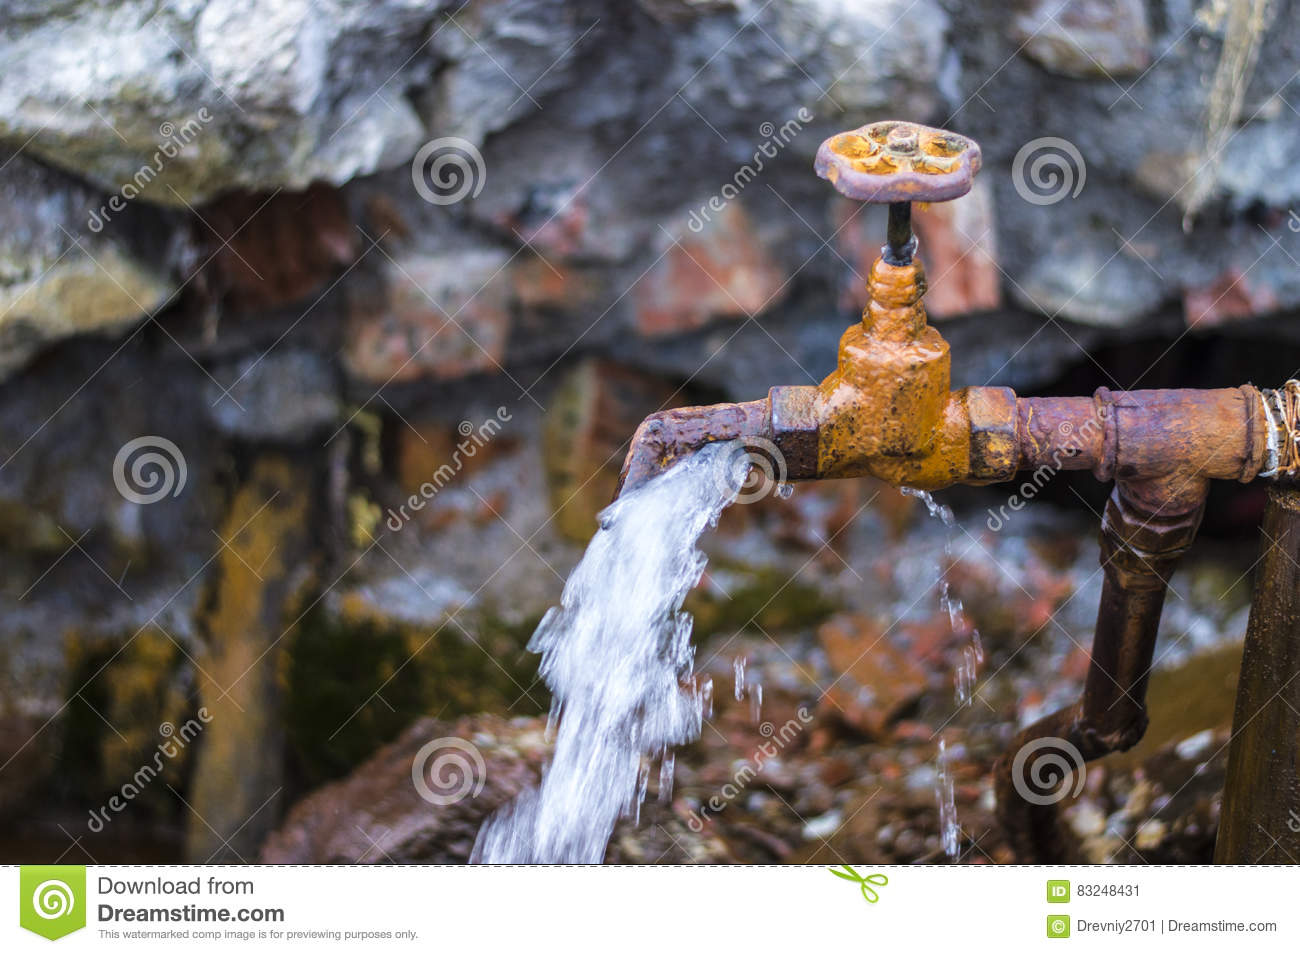 Rusty Old Faucet On A Spring In The Village Stock Image - Image of ...